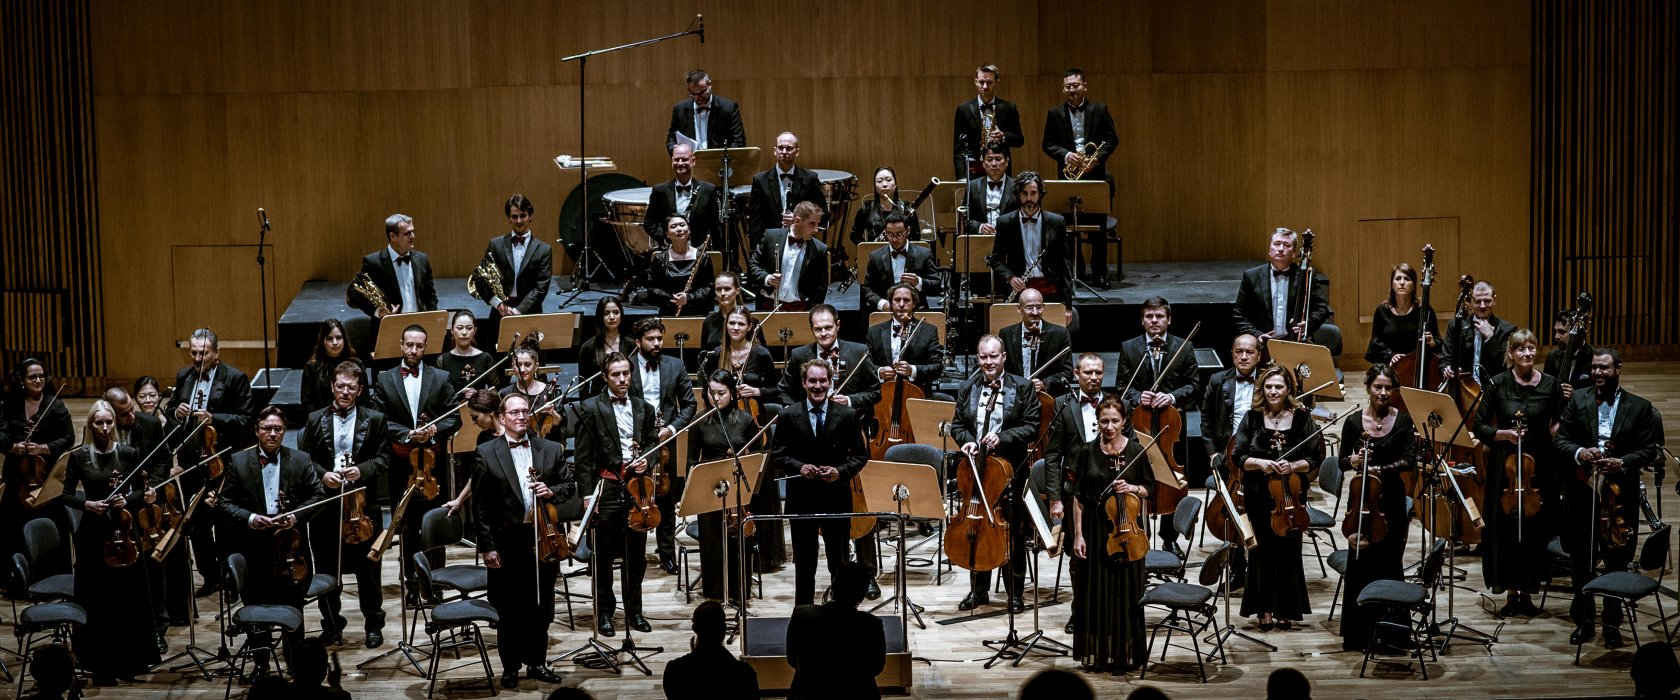 Concert Review: Vibrant violinist lights up Qatar Philharmonic Orchestra concert